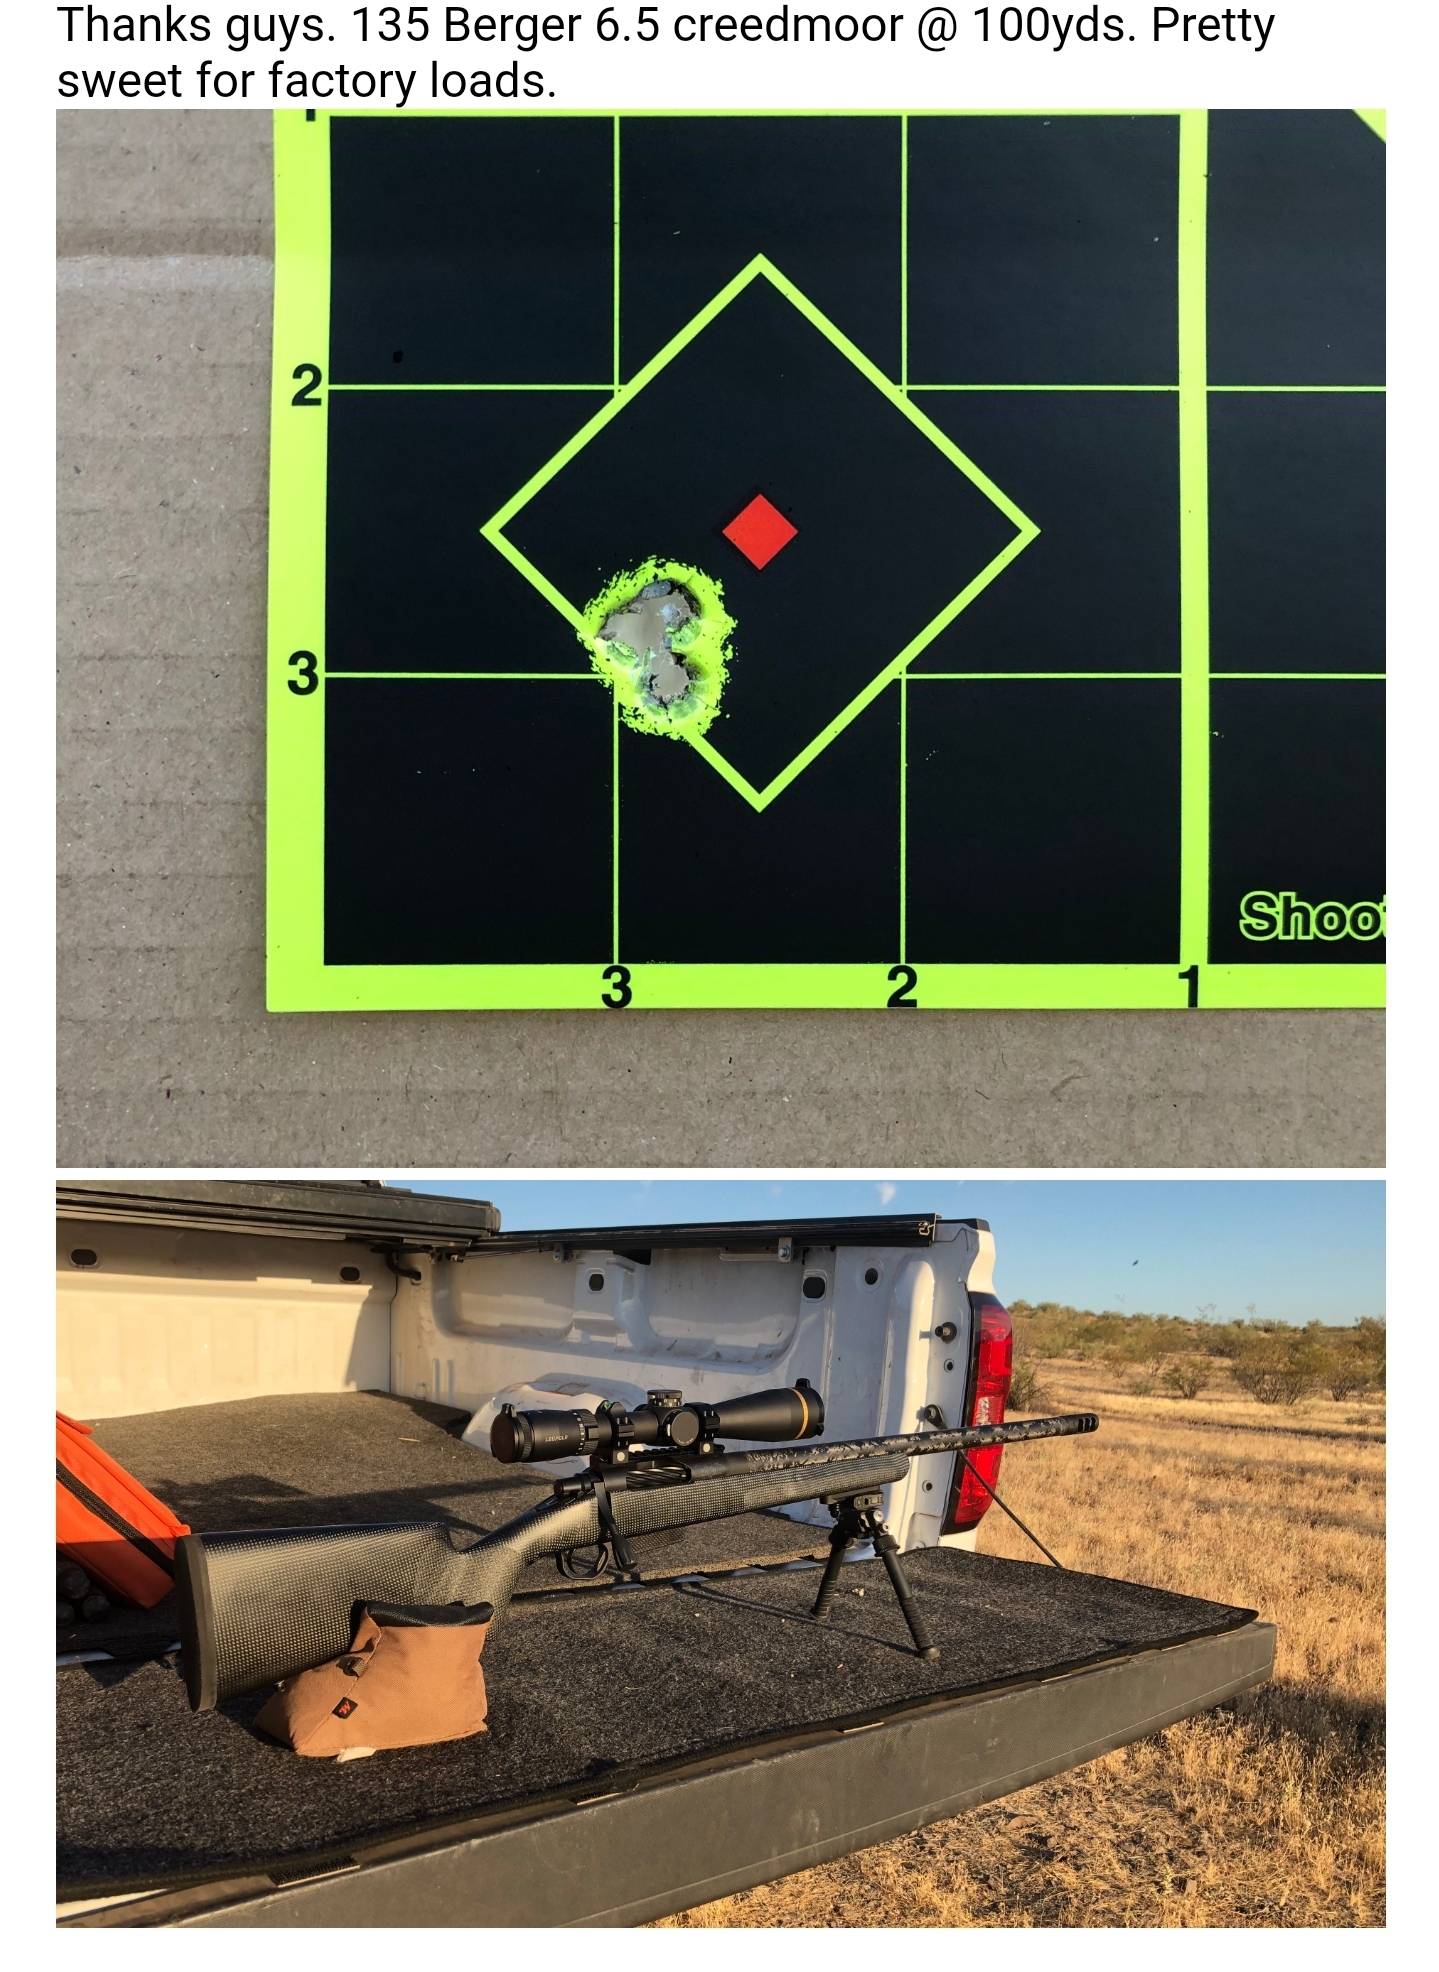 eagle-eye-6.5-creedmoor-135gr-user-review.jpg